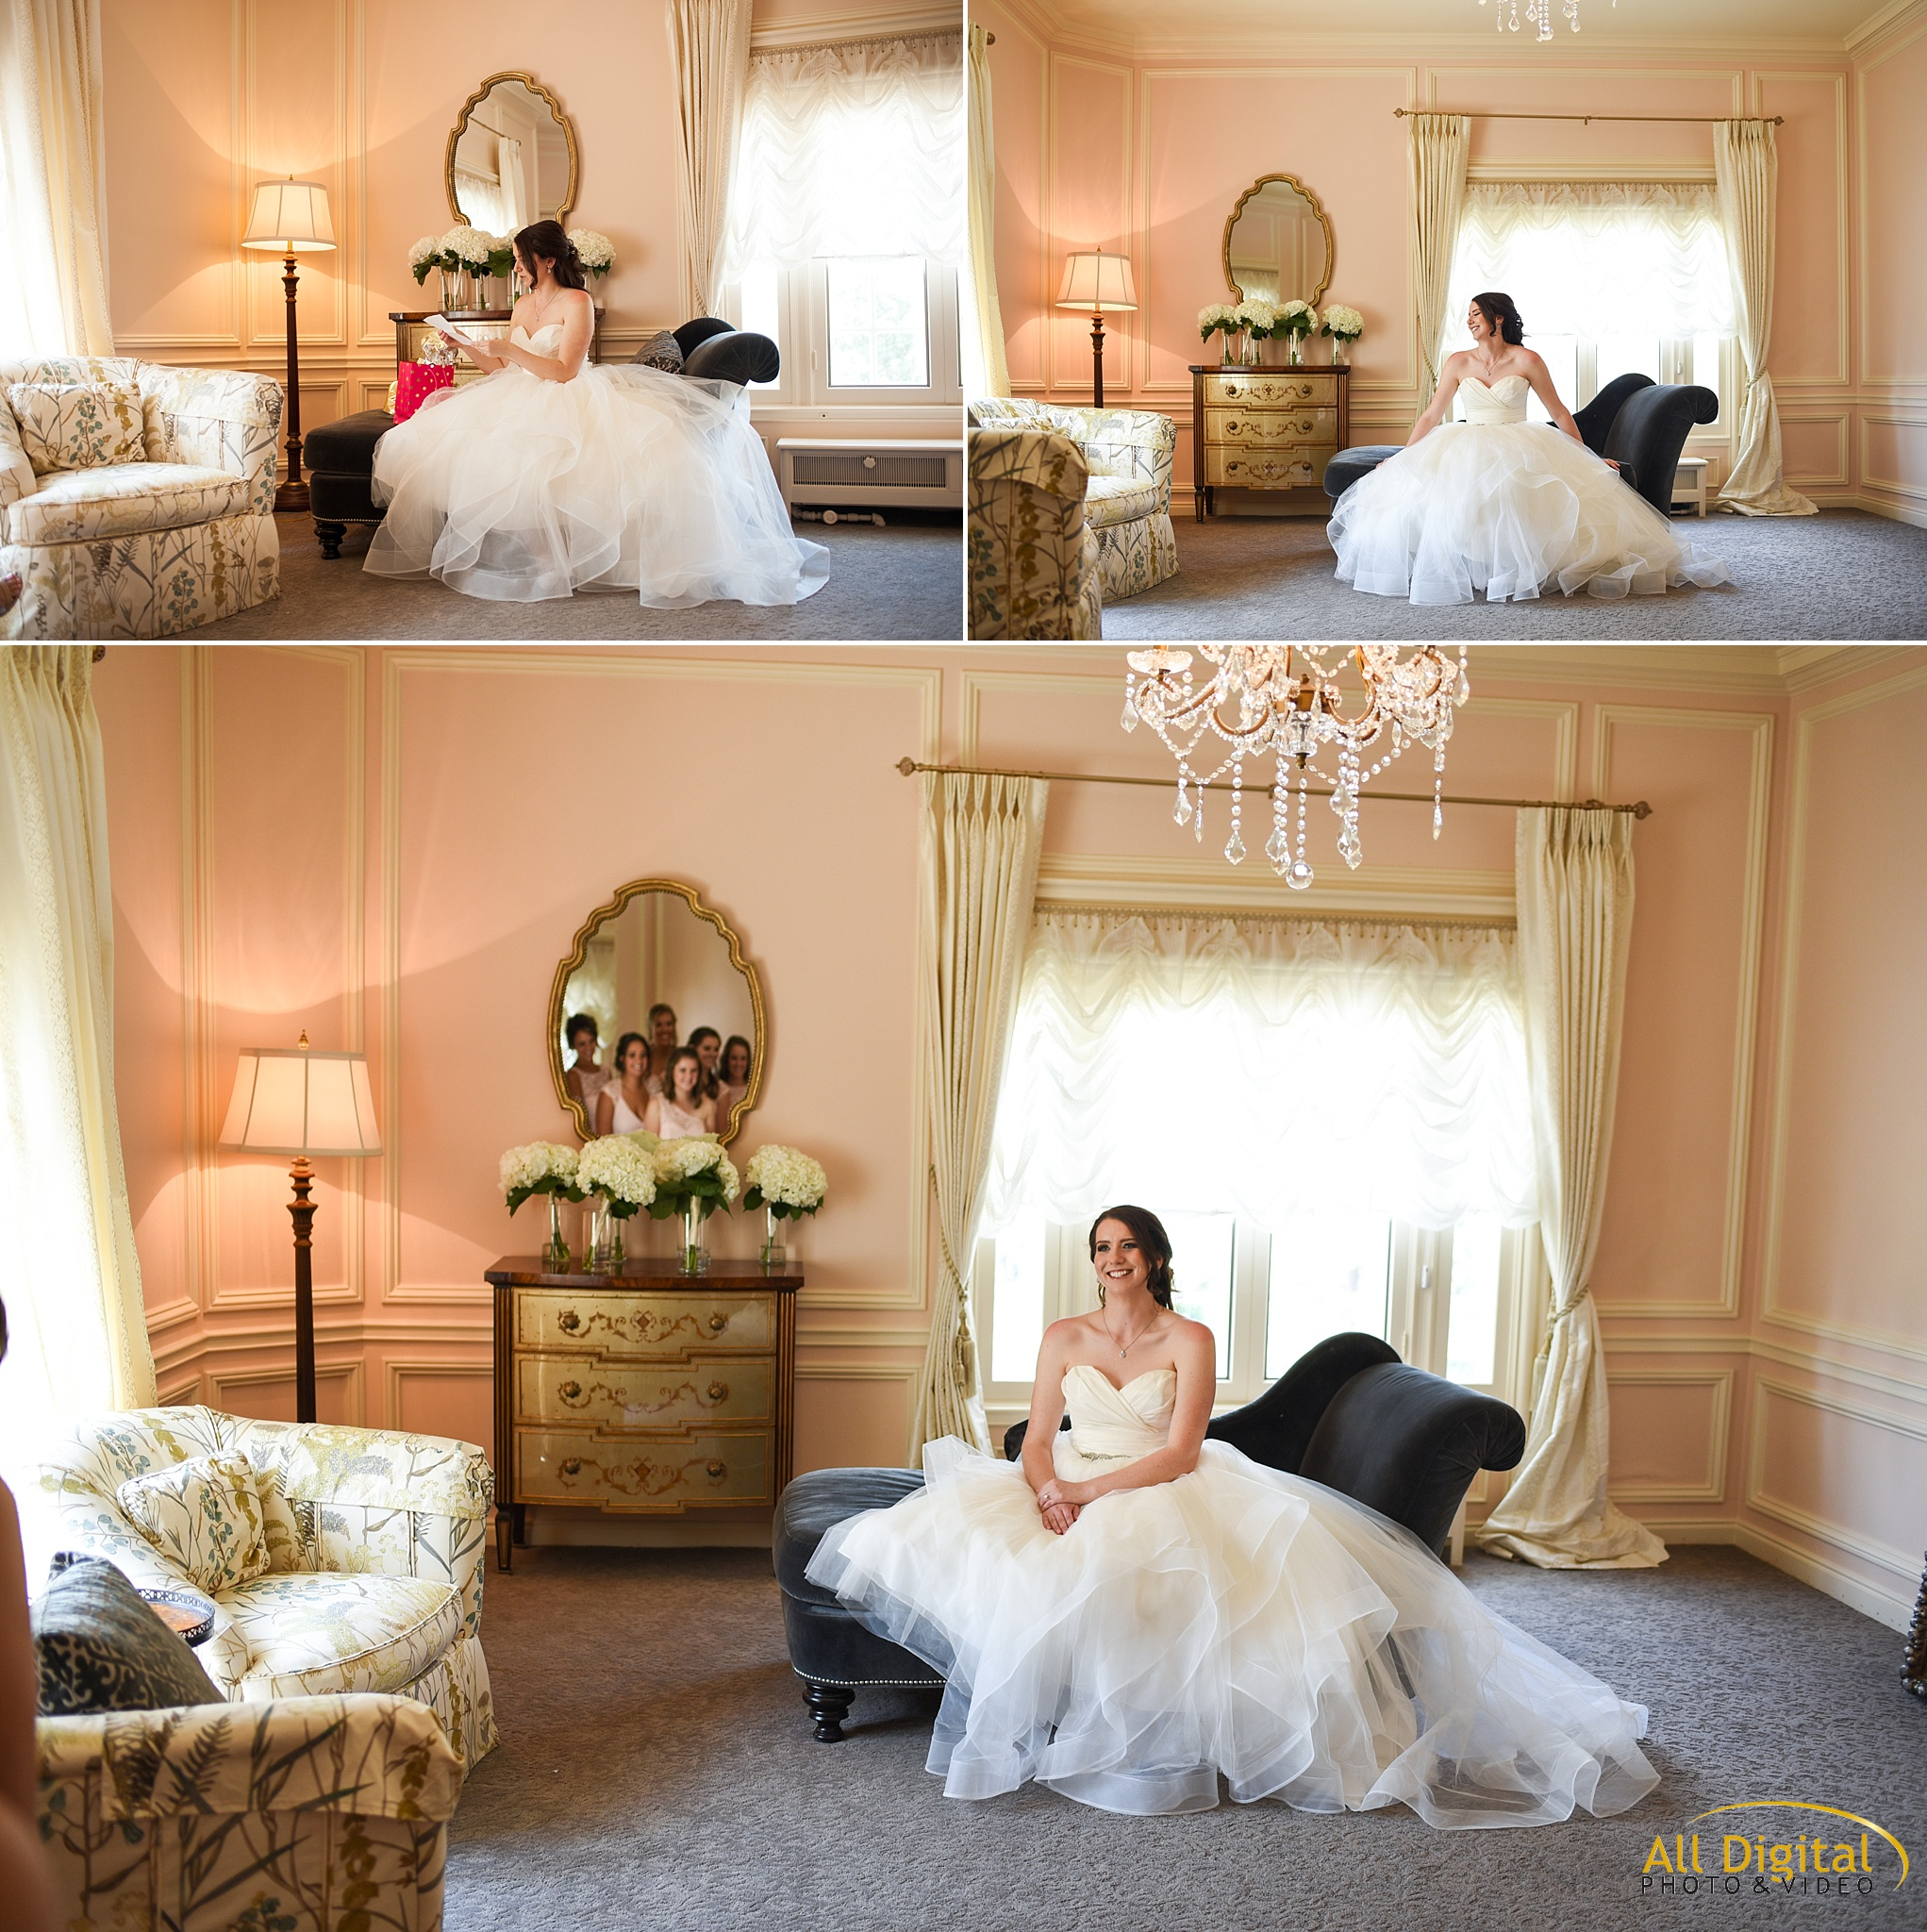 Bridal Portraits in Bridal Suite at Highlands Ranch Mansion